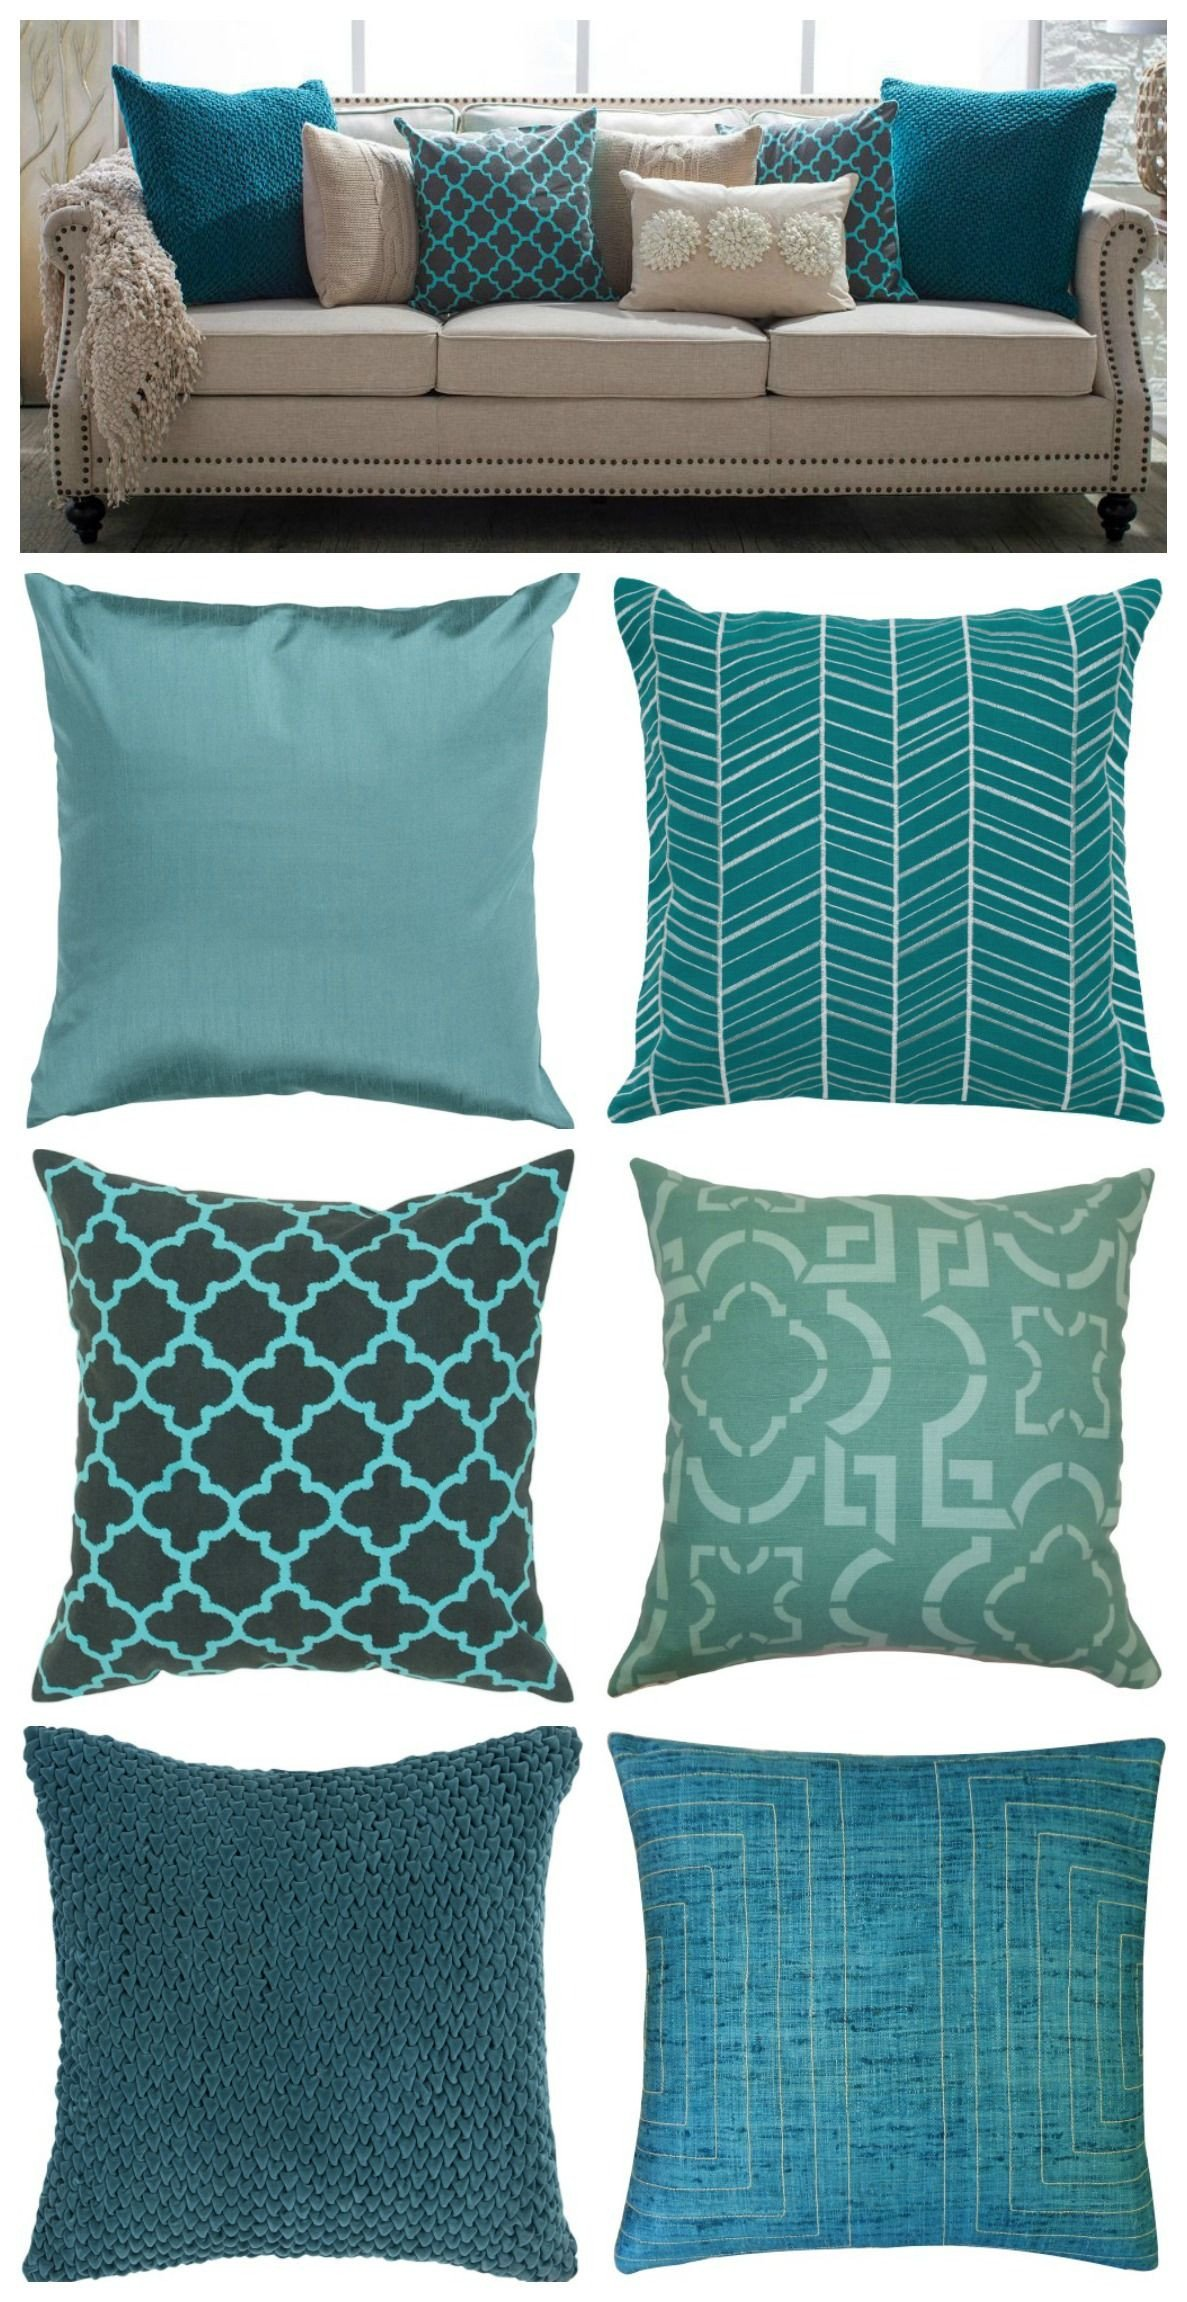 Teal and Gray Bedroom Lovely Teal Pillows